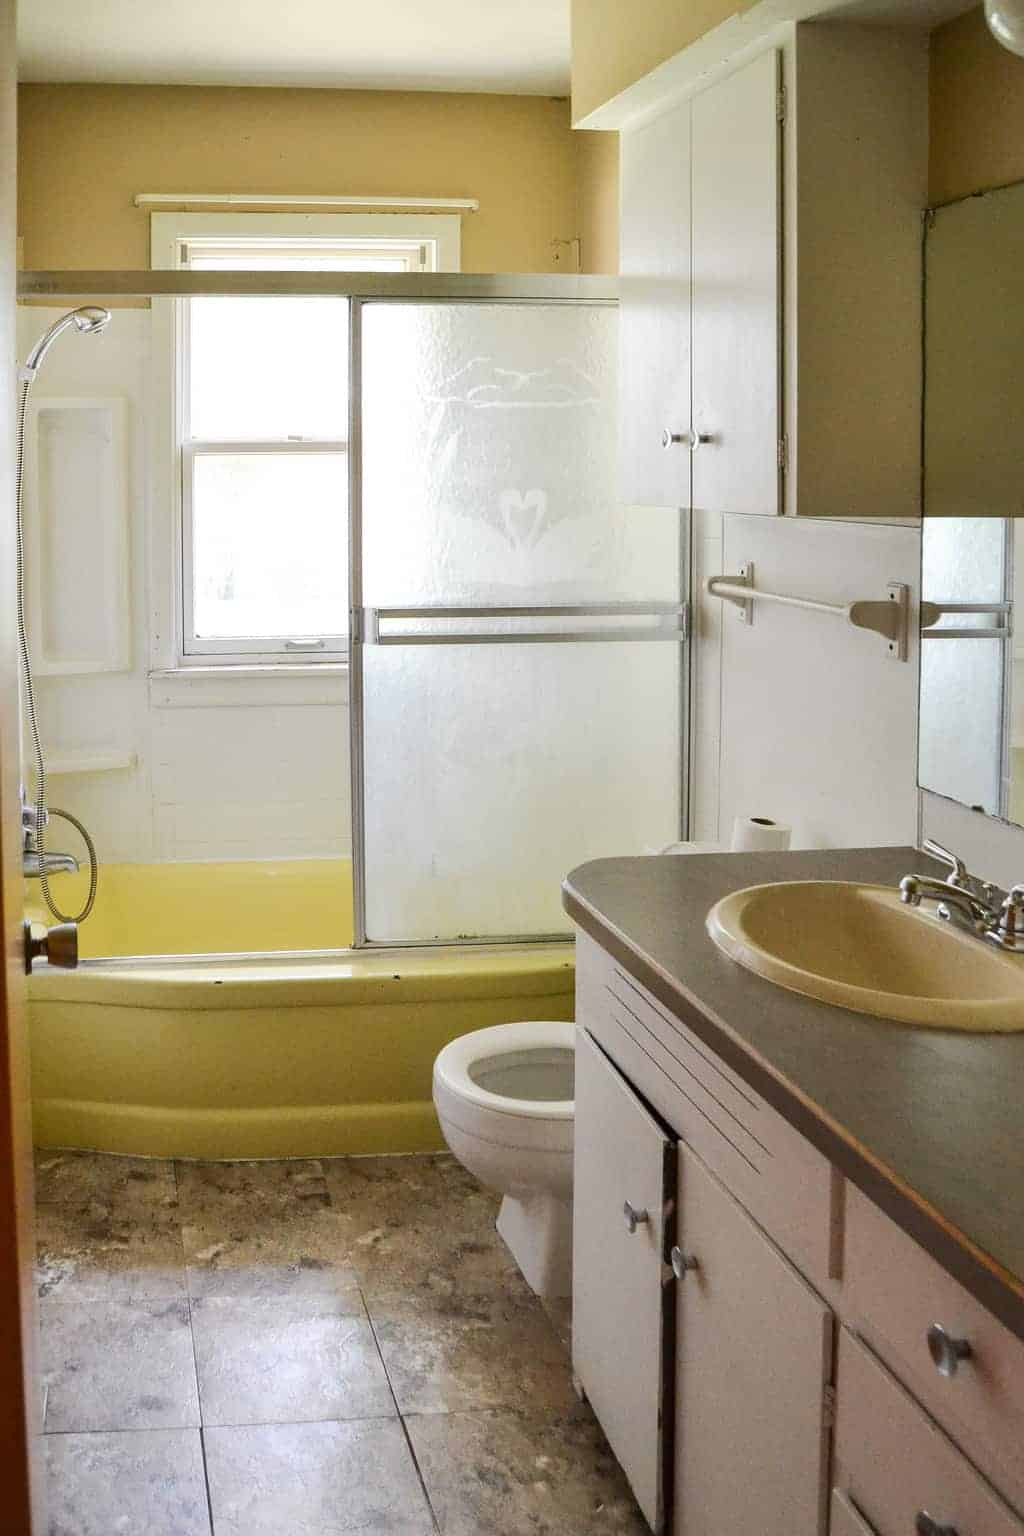 How To Paint A Bathtub Easily Amp Inexpensively My